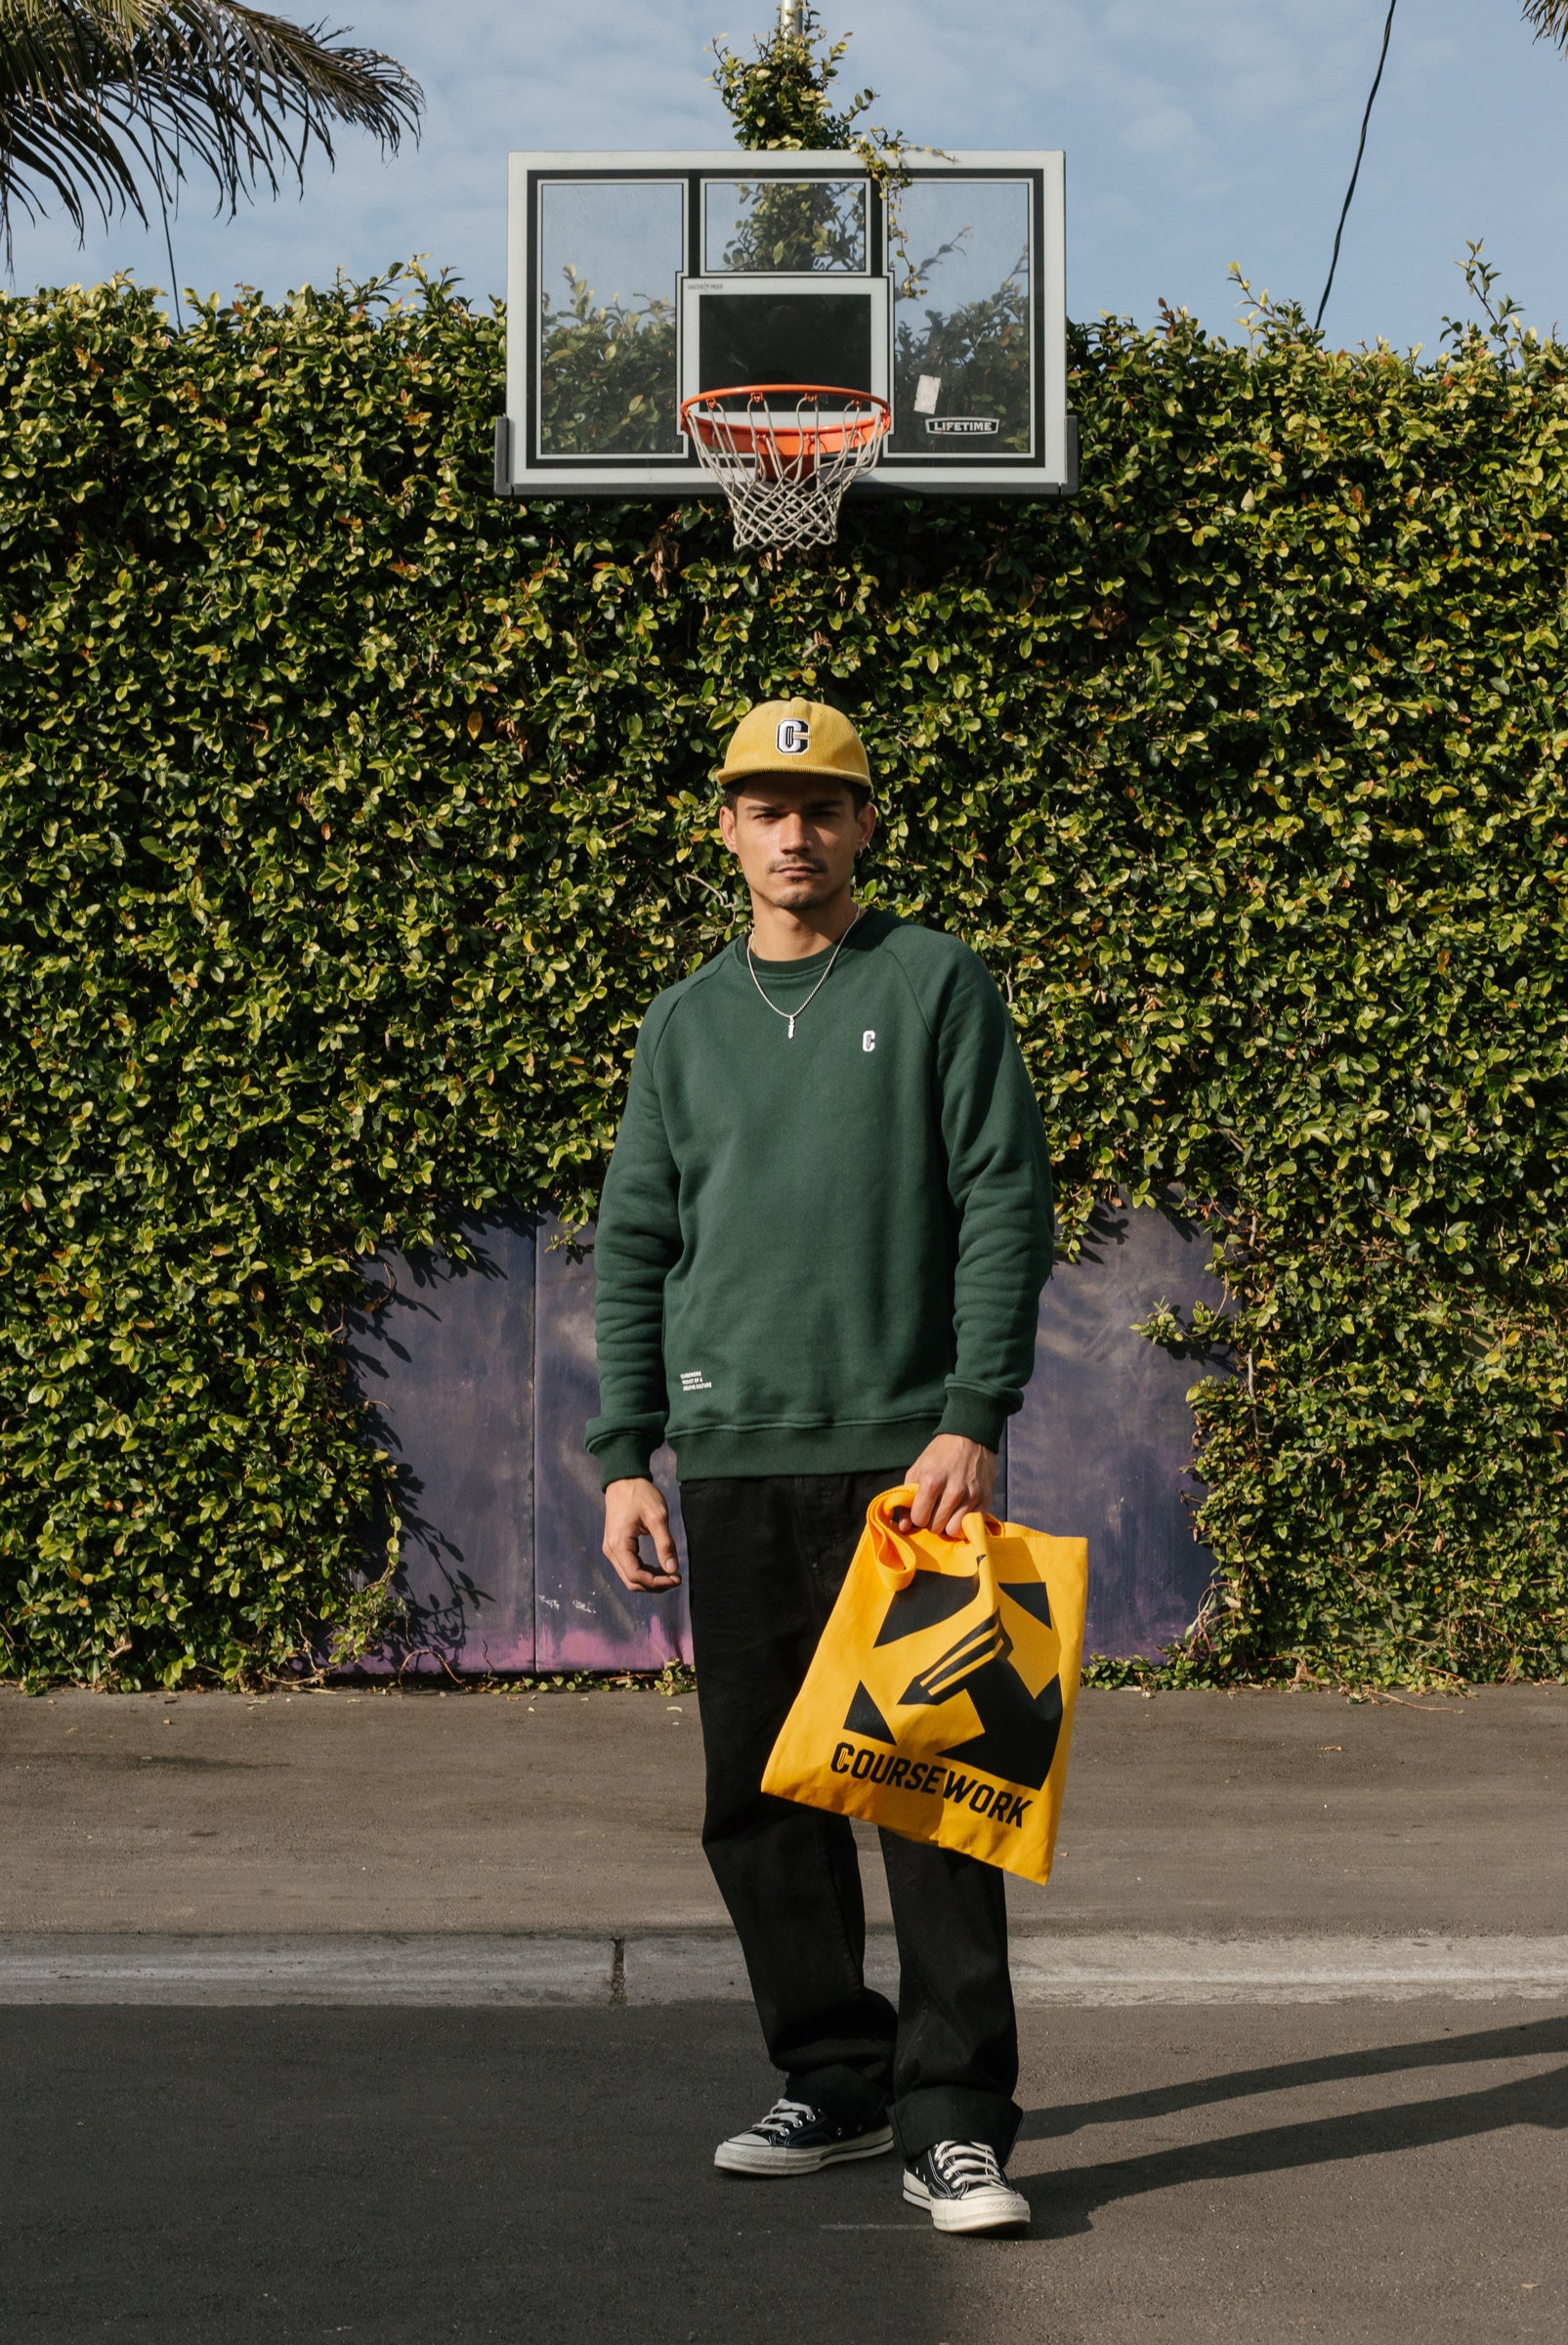 Model wearing the Varsity C Corduroy Cap in yellow and Icon Crewneck Sweatshirt in forest green and standing in front a basketball hoop and foliage..